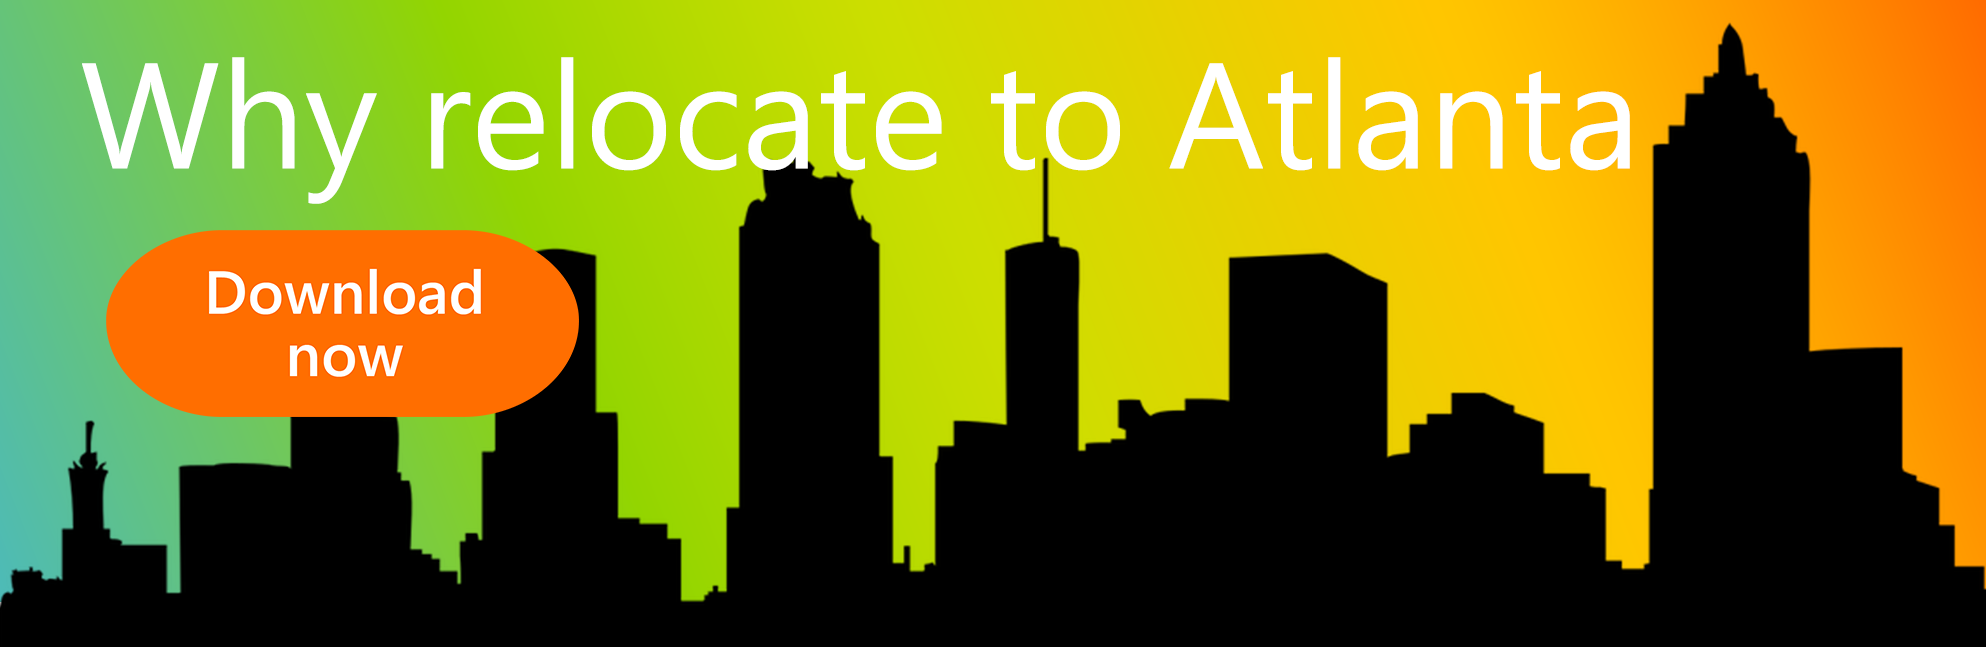 Relocation ATL Infographic Download